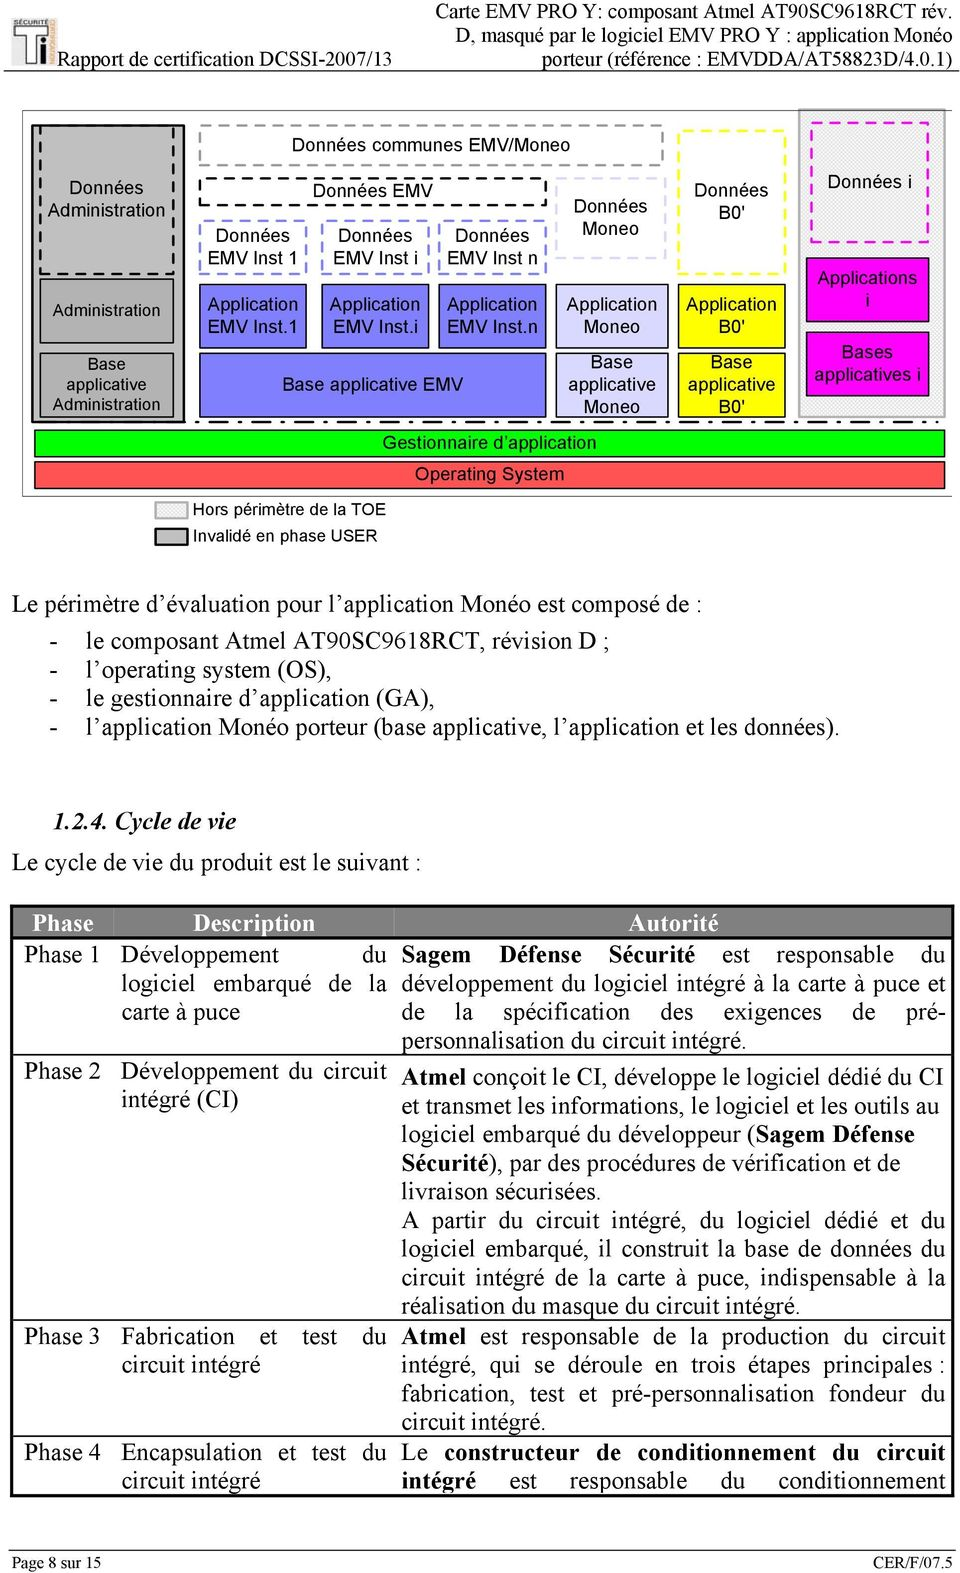 n Données Moneo Application Moneo Base applicative Moneo Données B0' Application B0' Base applicative B0' Données i Applications i Bases applicatives i Gestionnaire d application Operating System